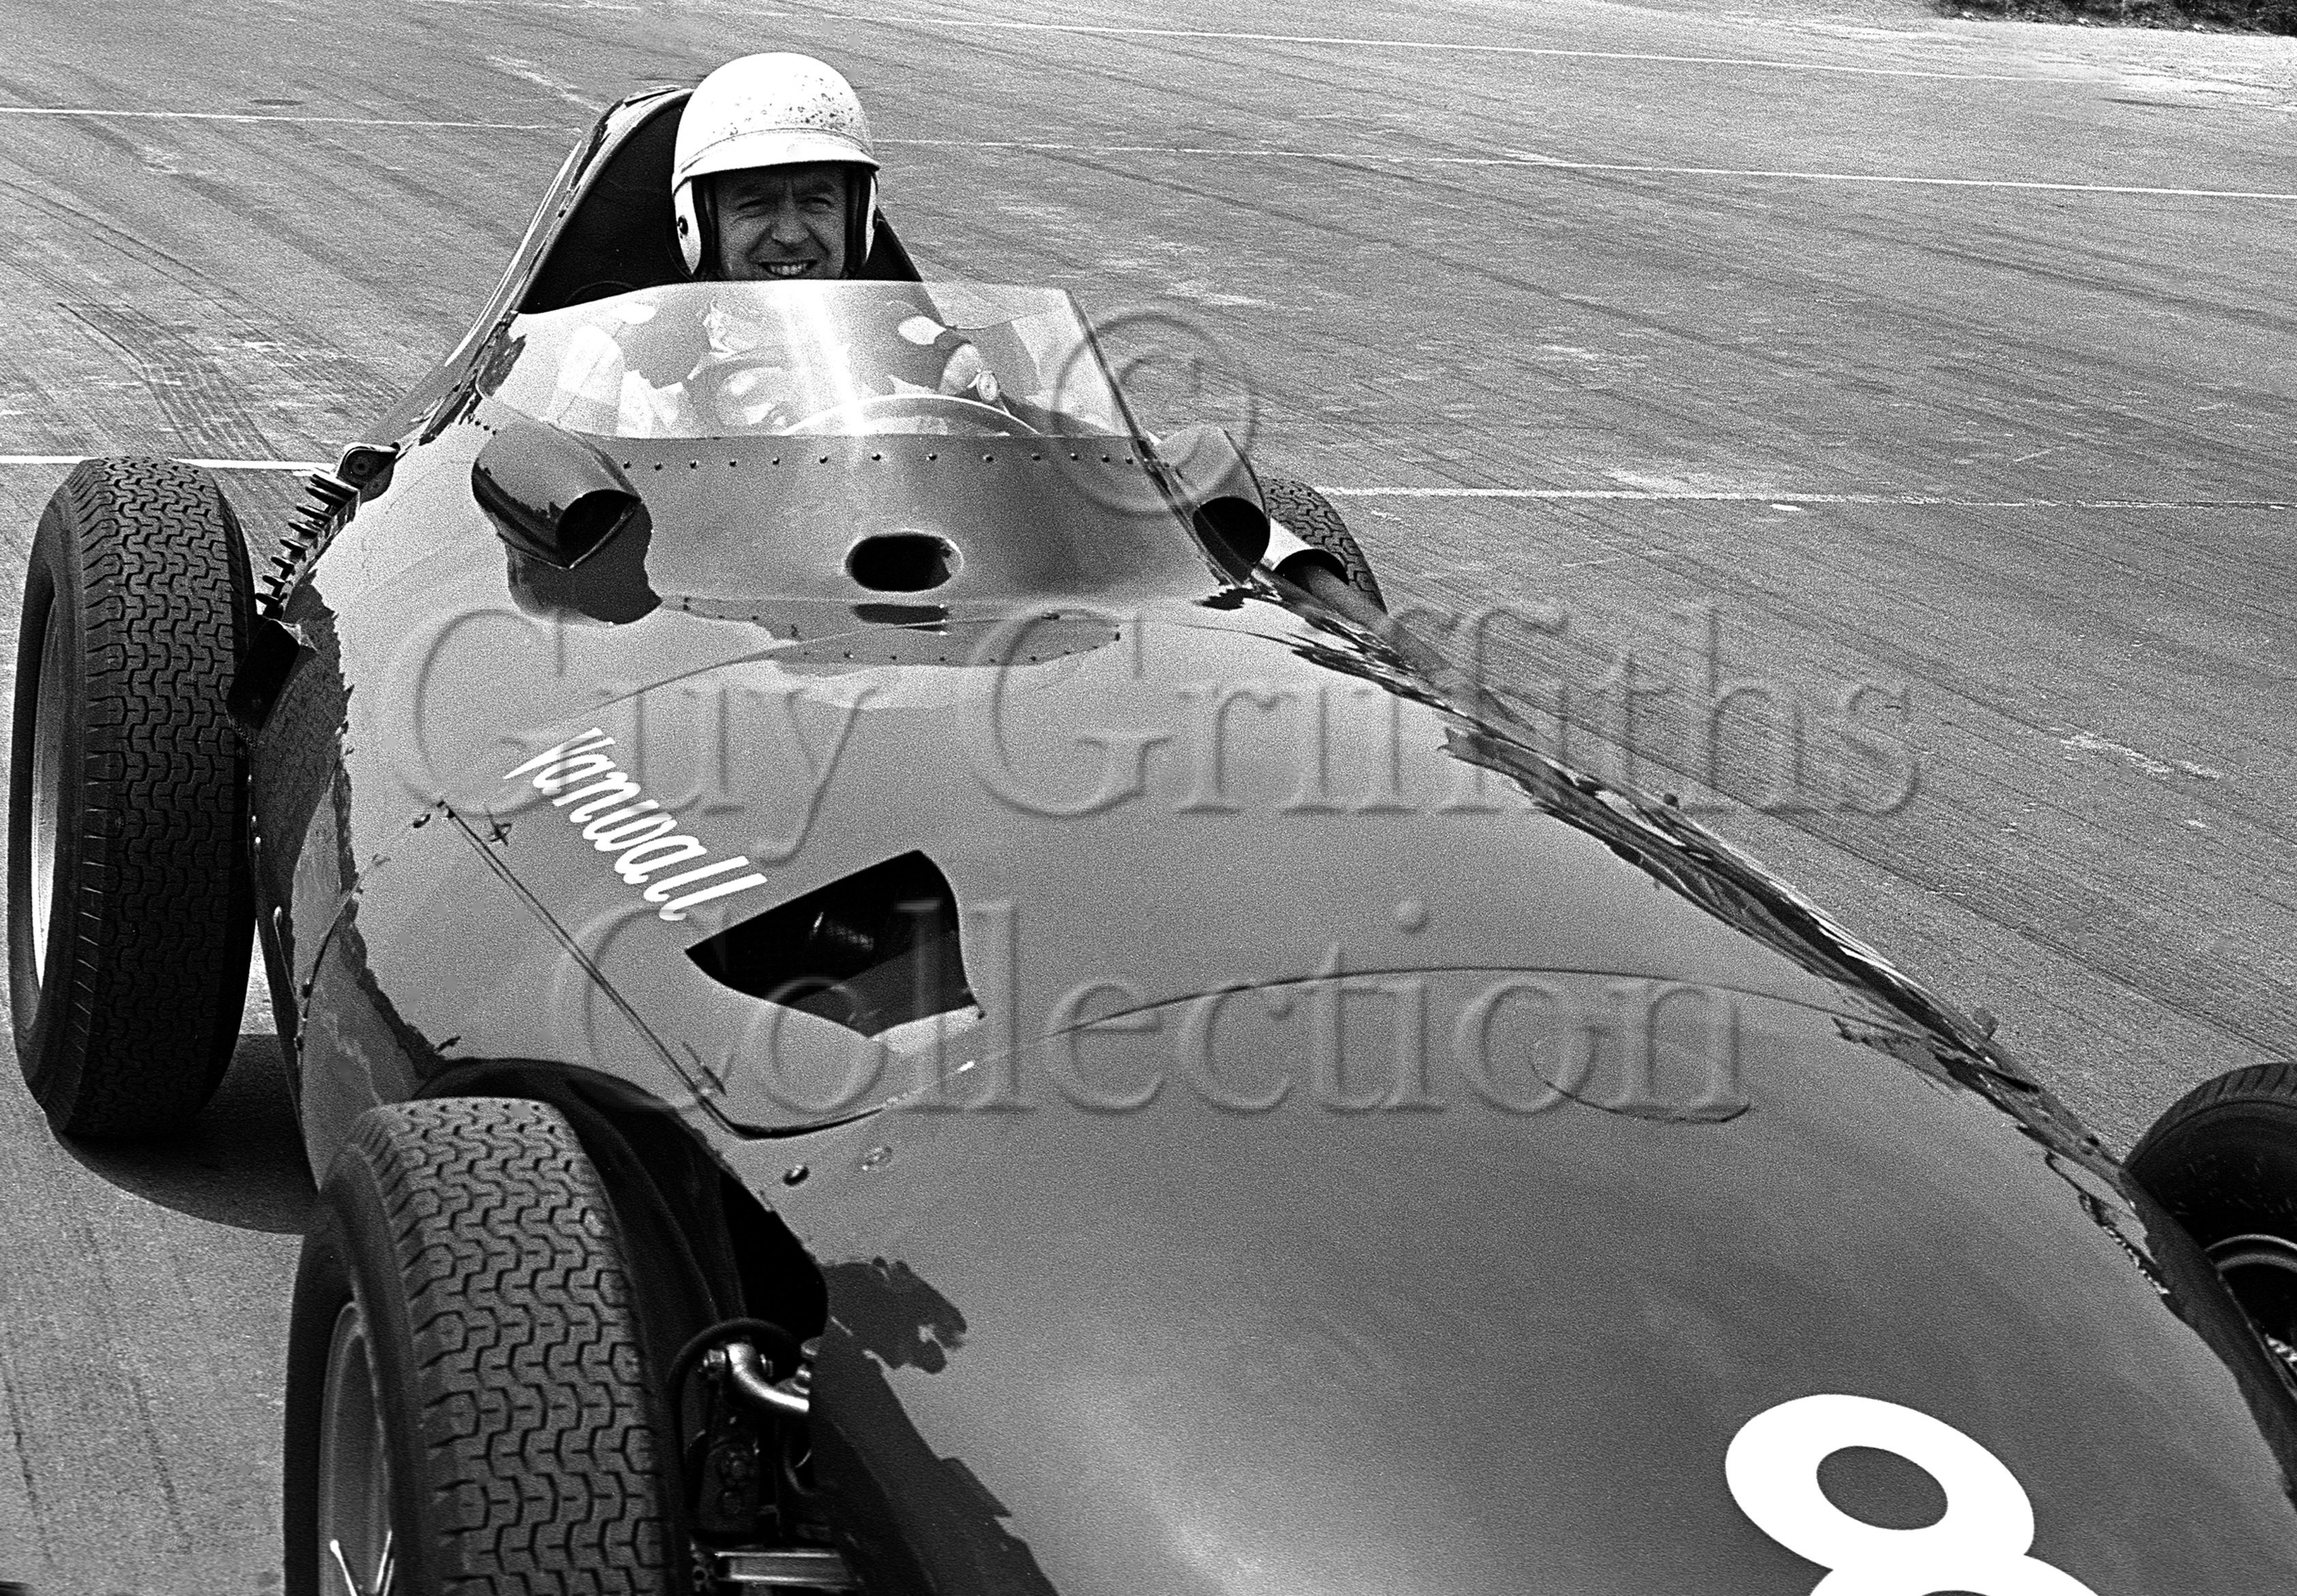 119-584–T-Brooks–Vanwall–Silverstone–15-06-1969.jpg - The Guy Griffiths Collection